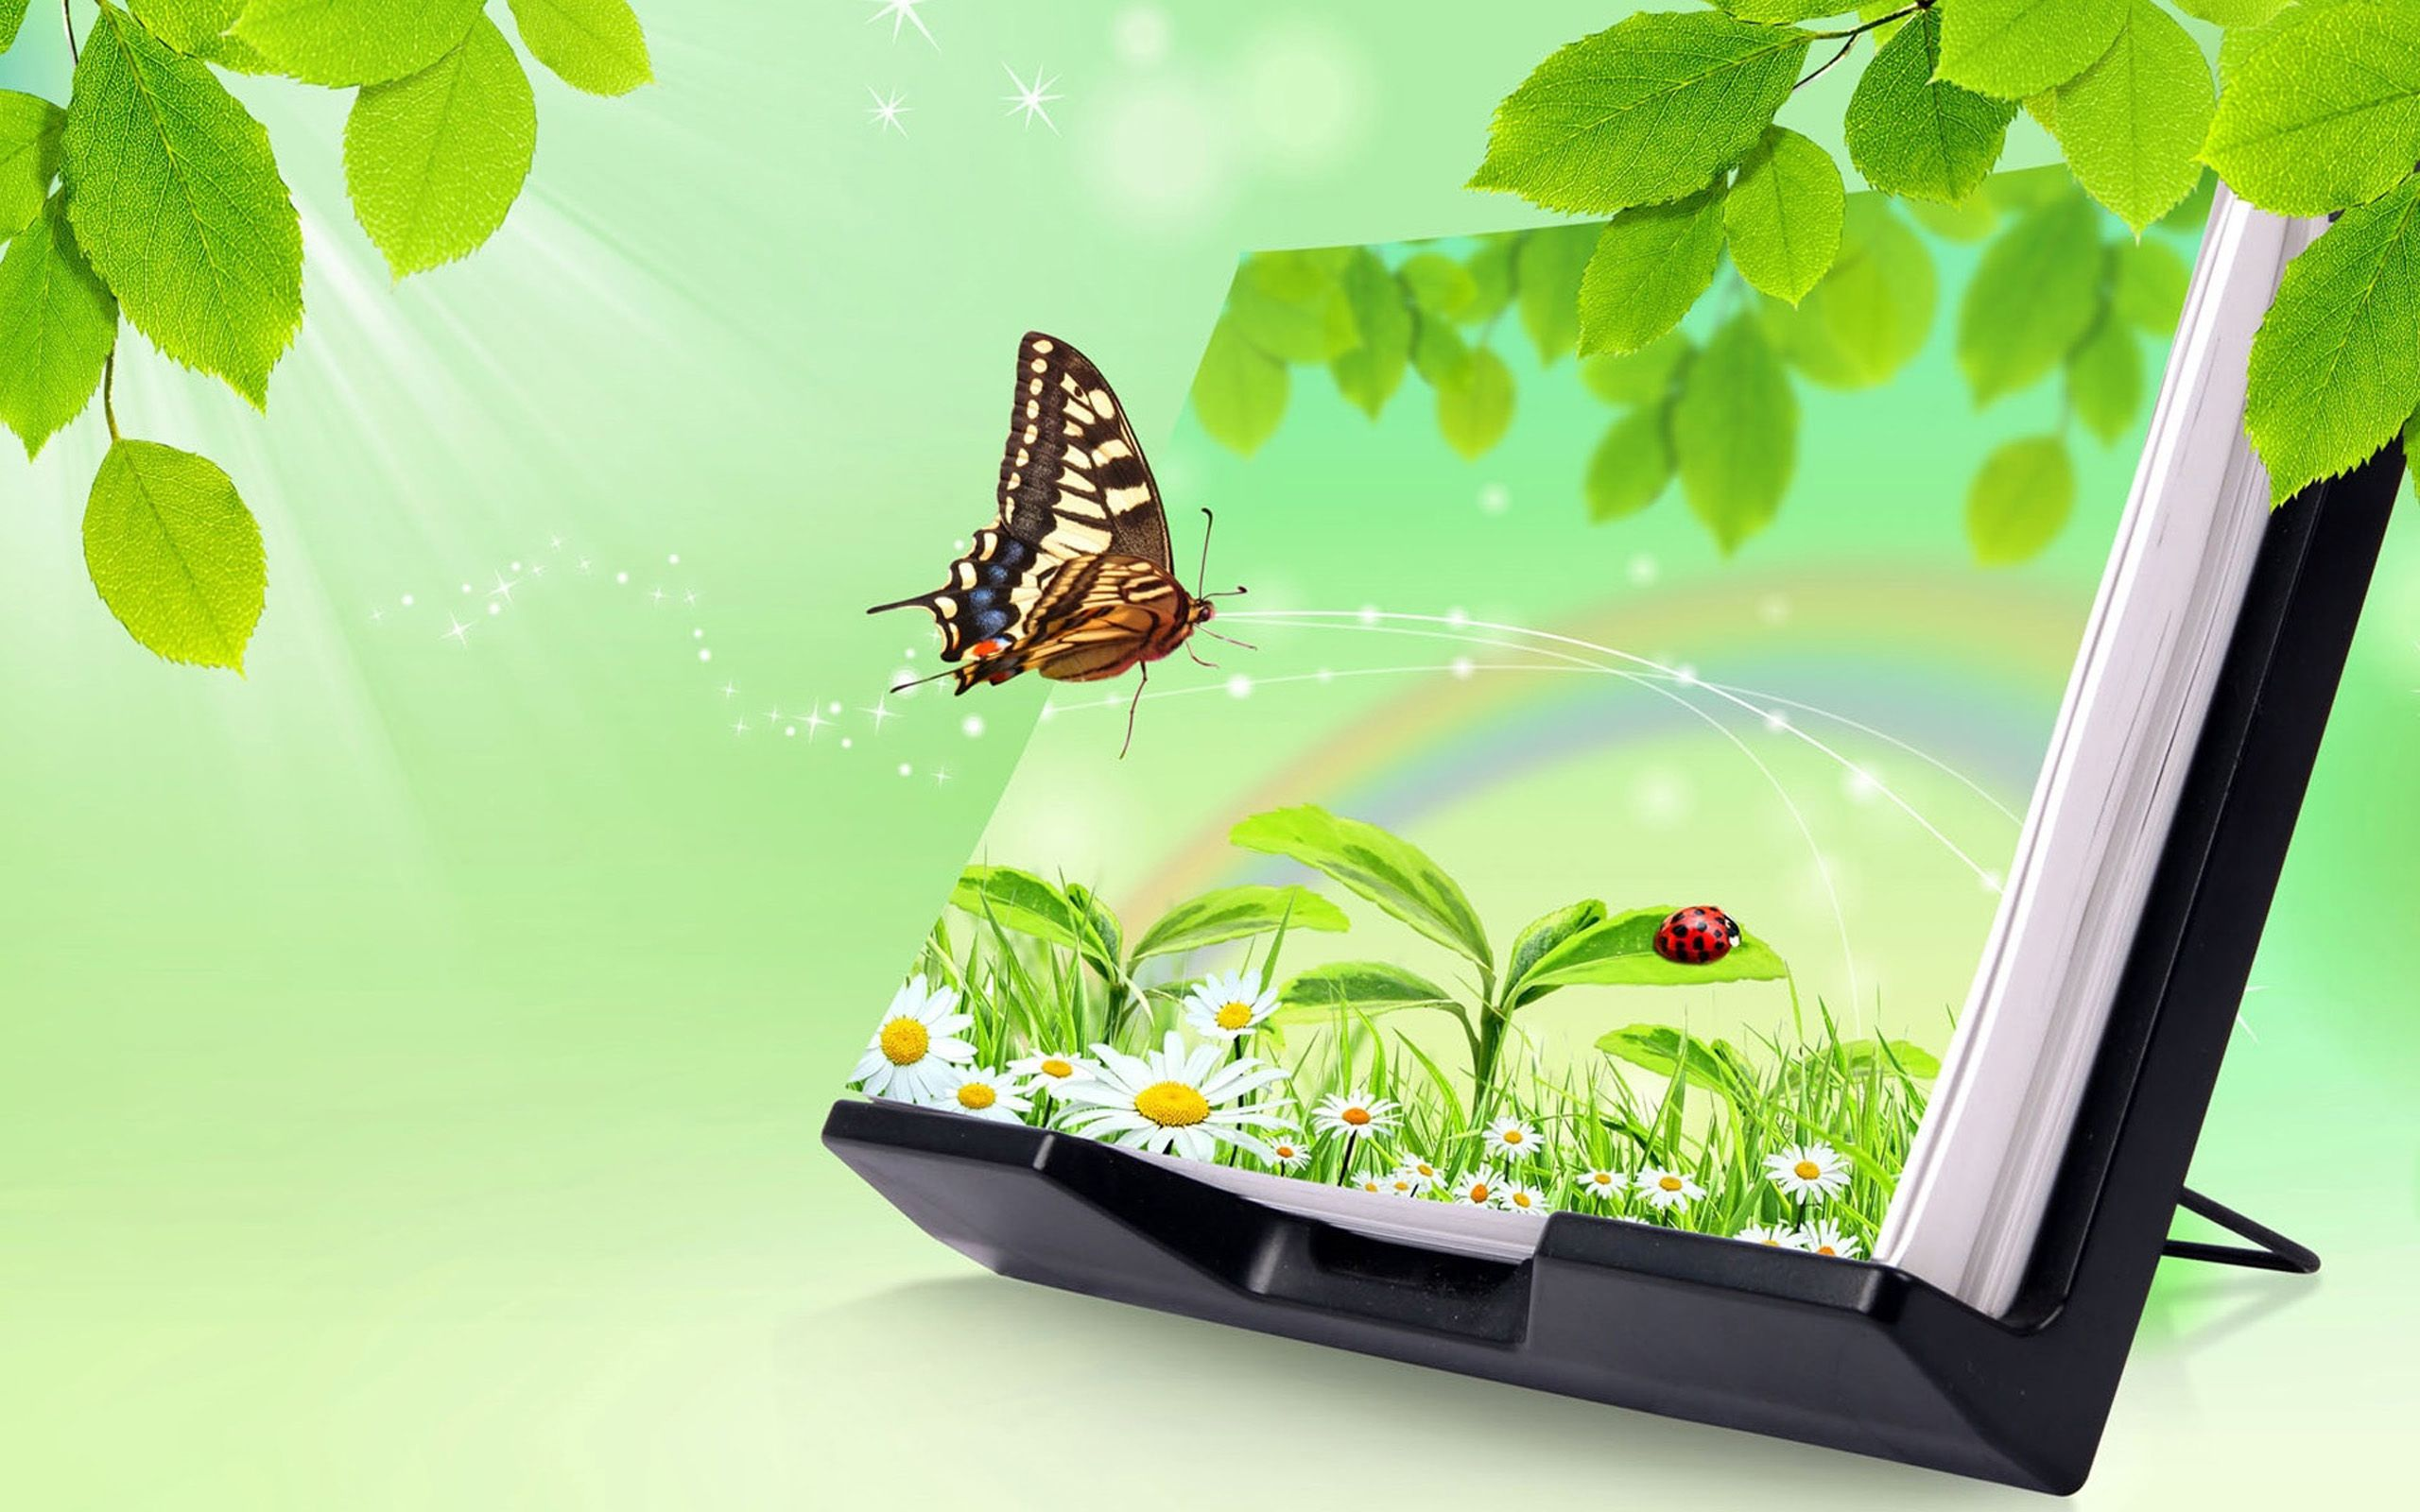 3d images of nature for desktop background with butterfly and